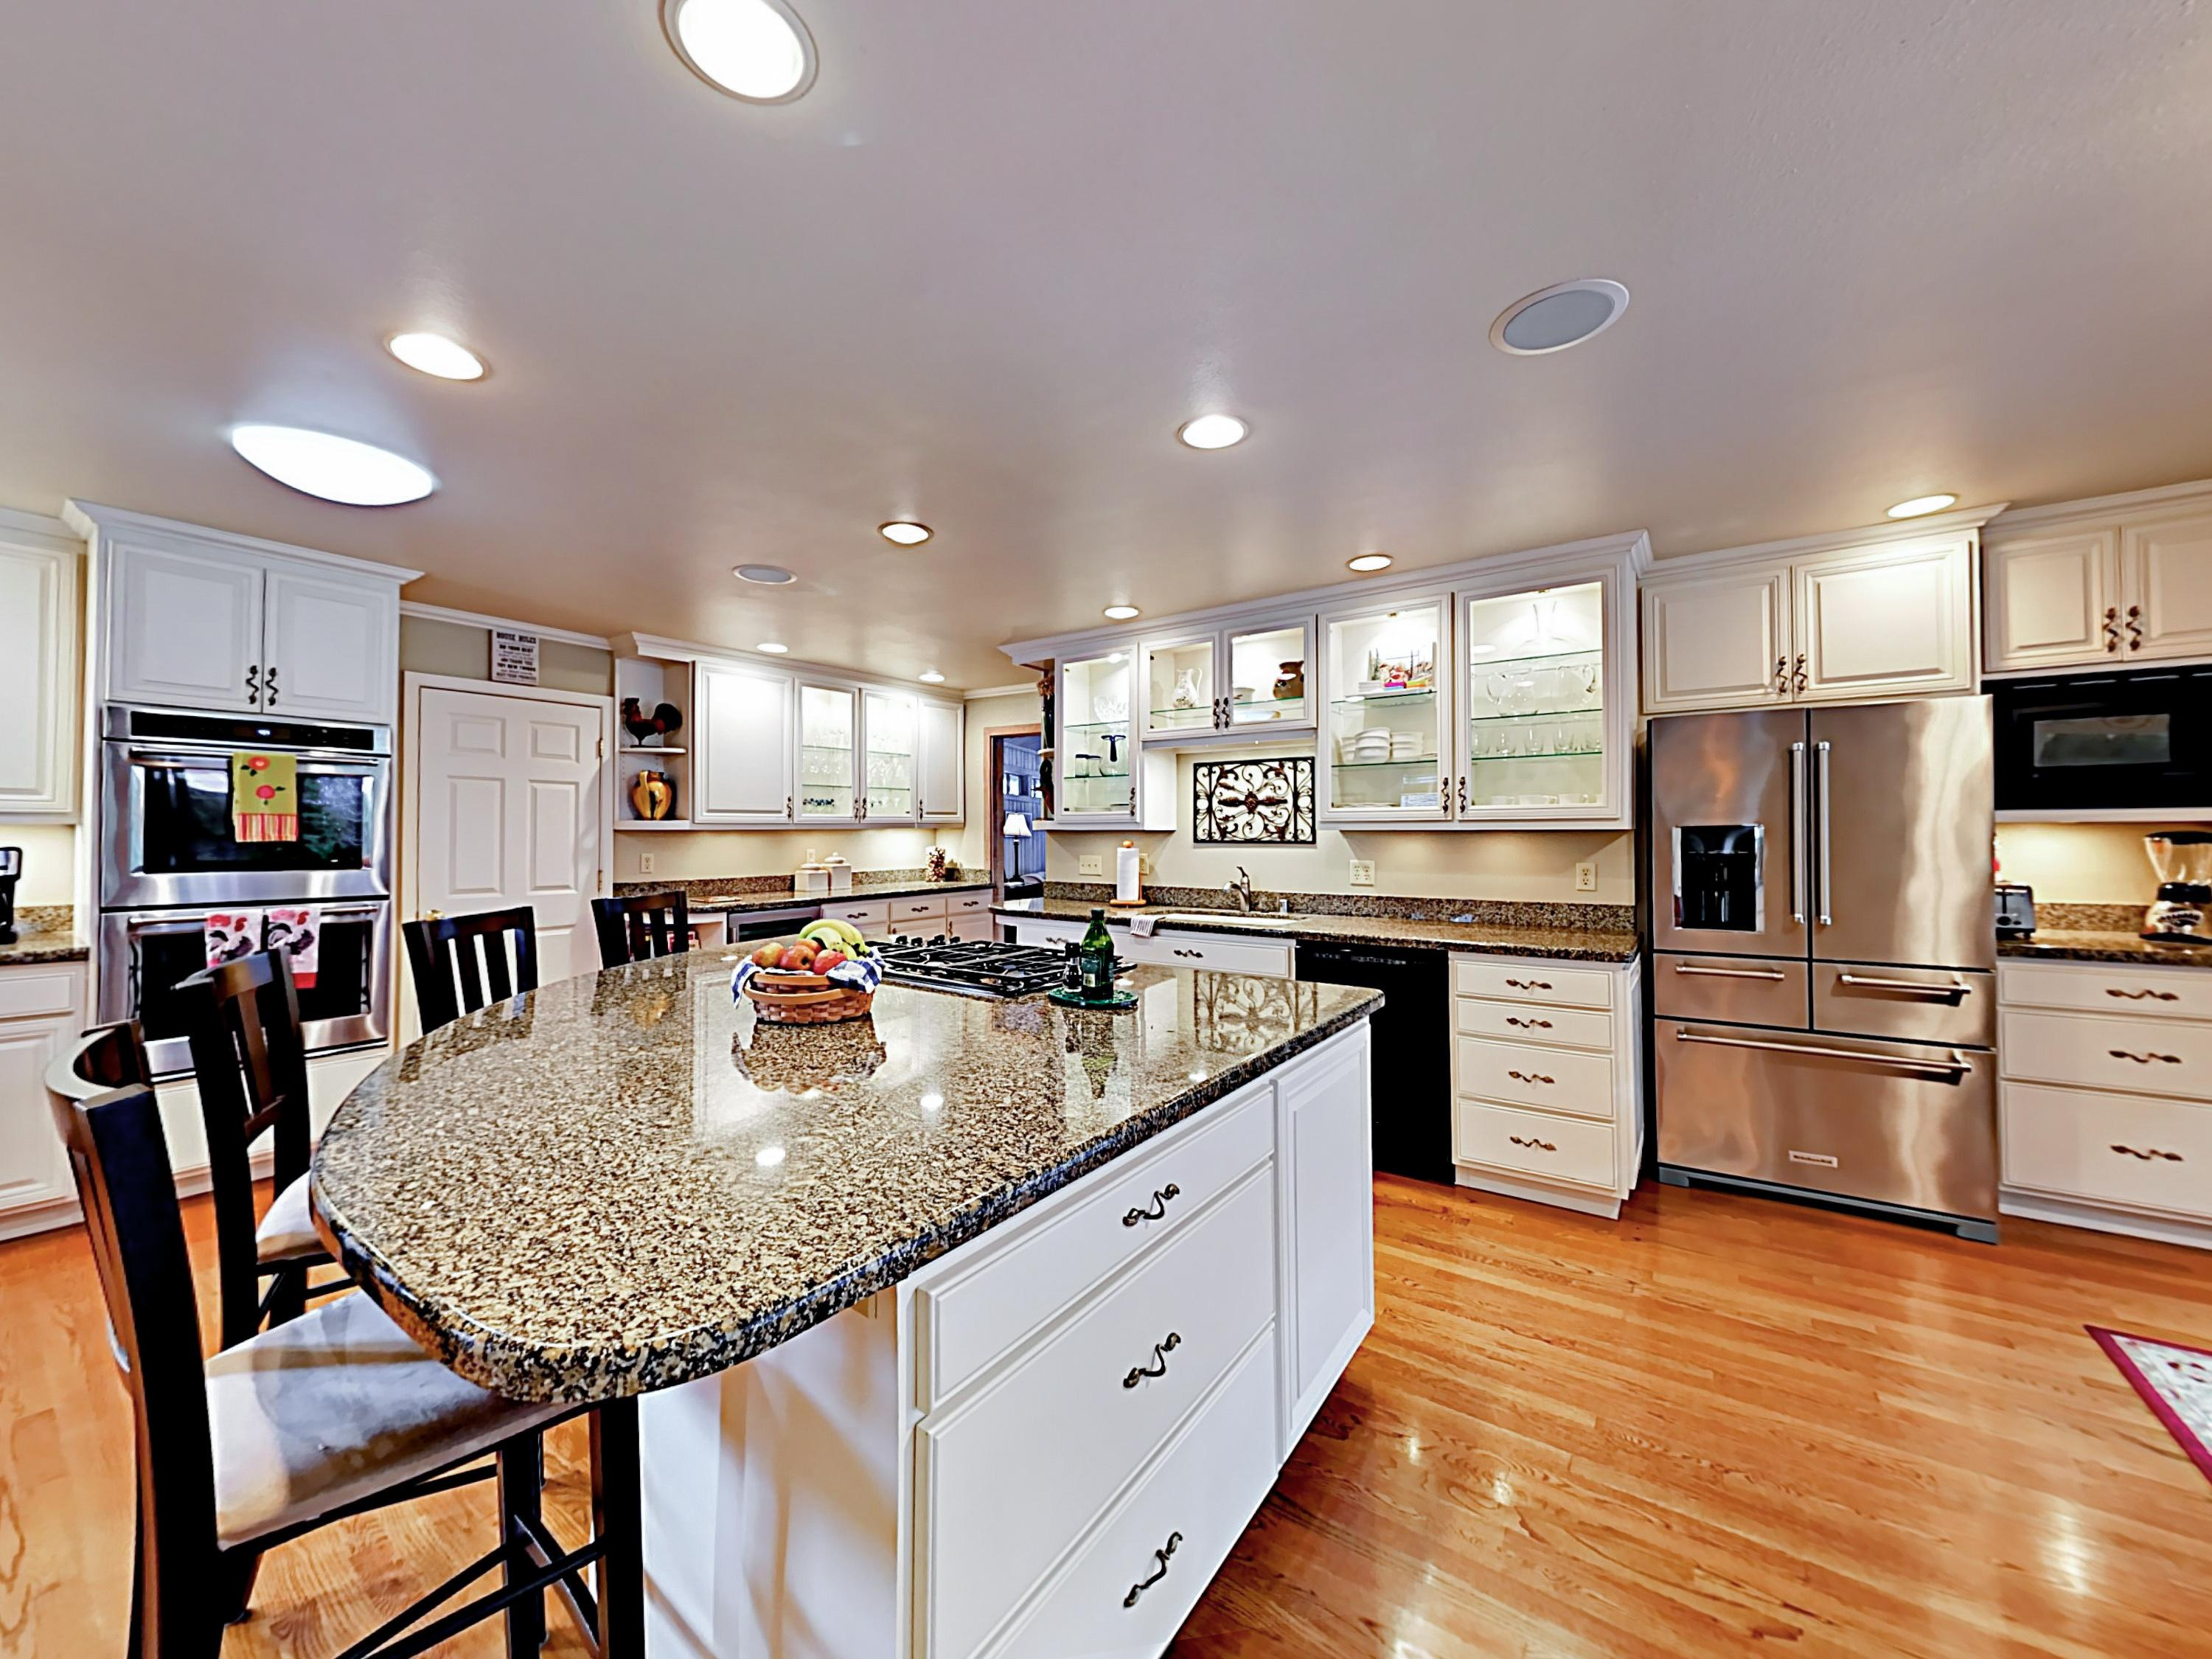 The chef in your group will appreciate the gourmet kitchen, outfitted with granite countertops, stainless steel appliances, and a large center island.